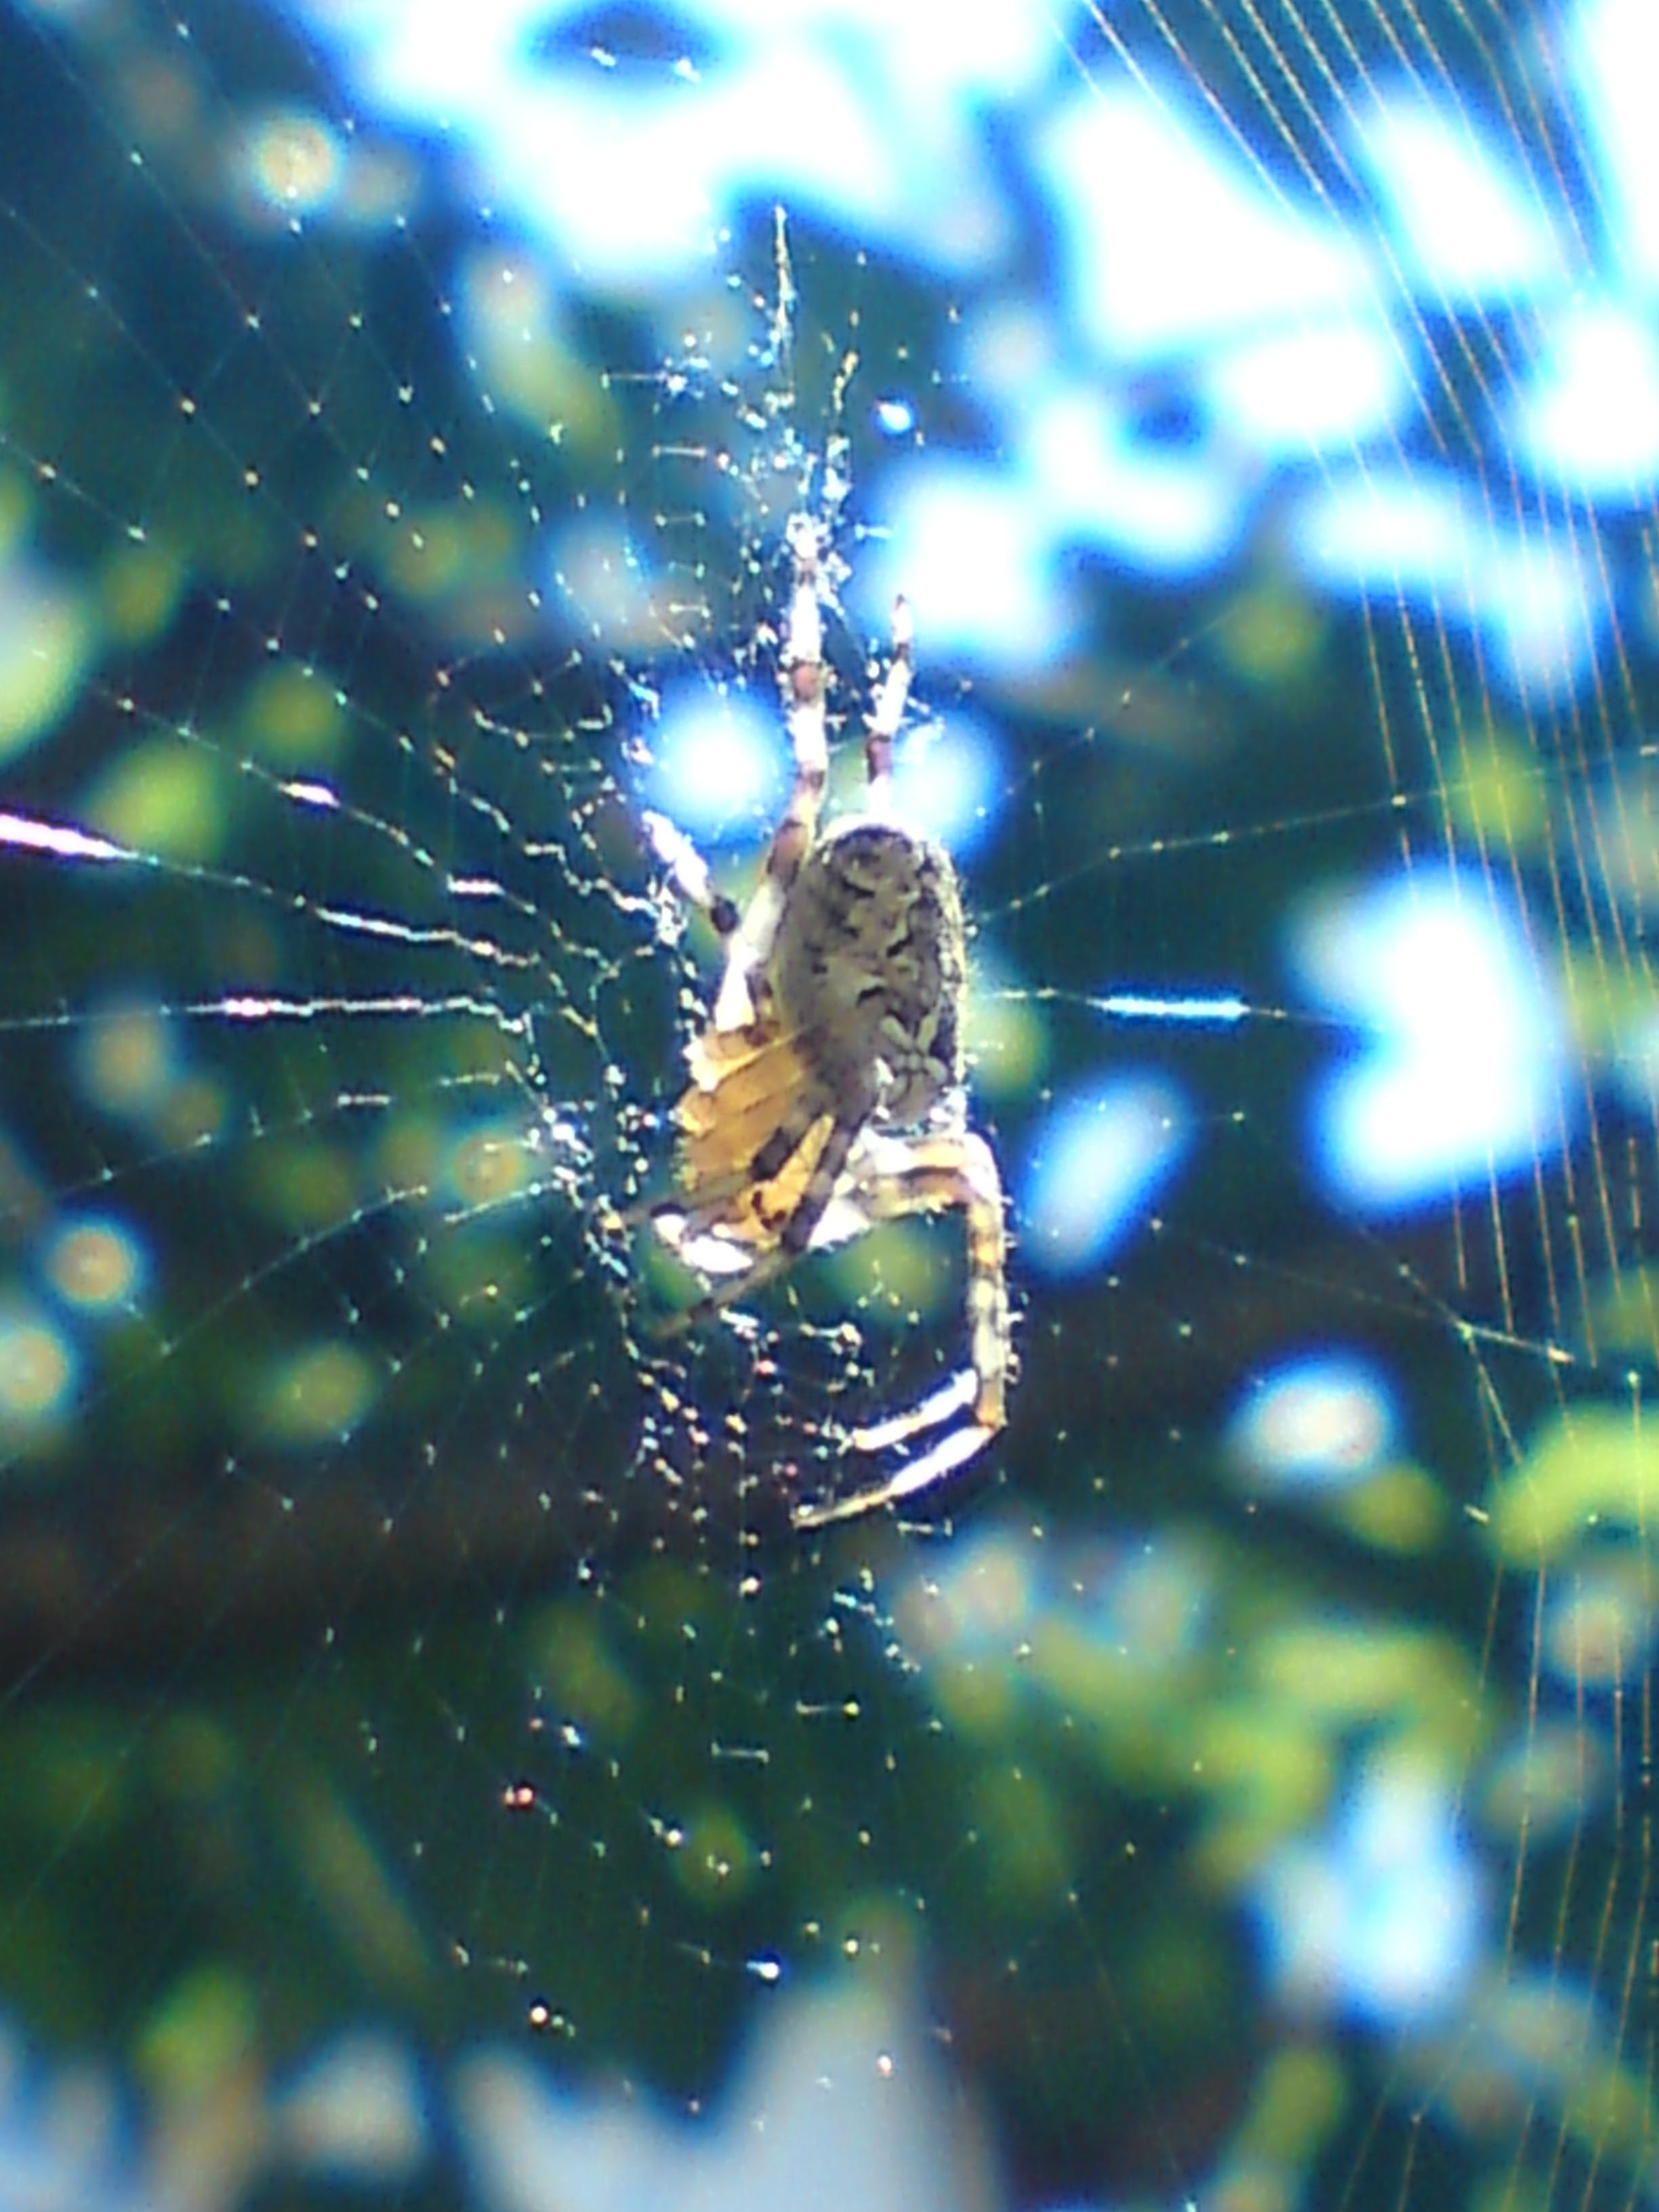 Free stock photo of spider